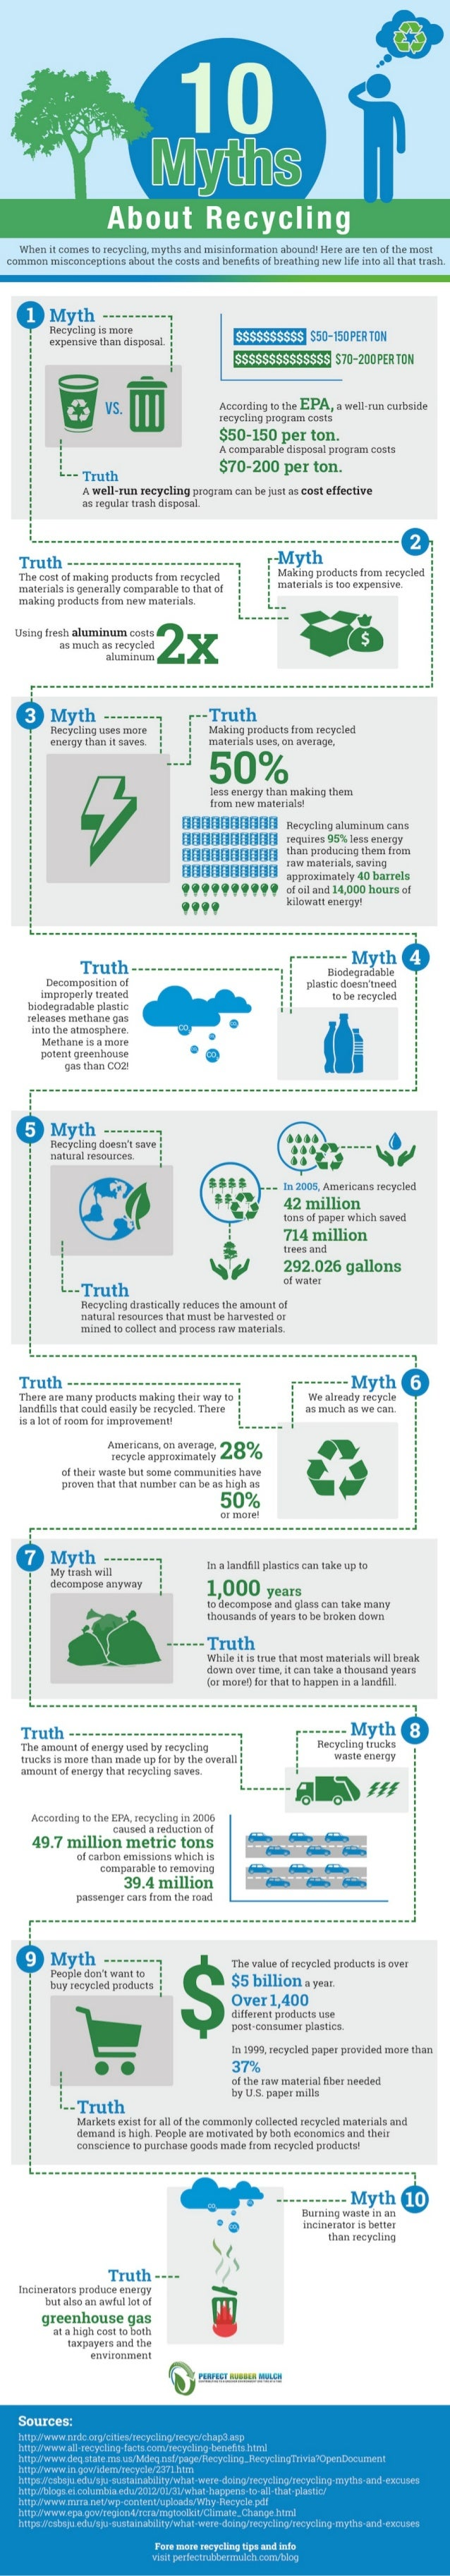 Recycling Myths Infographic